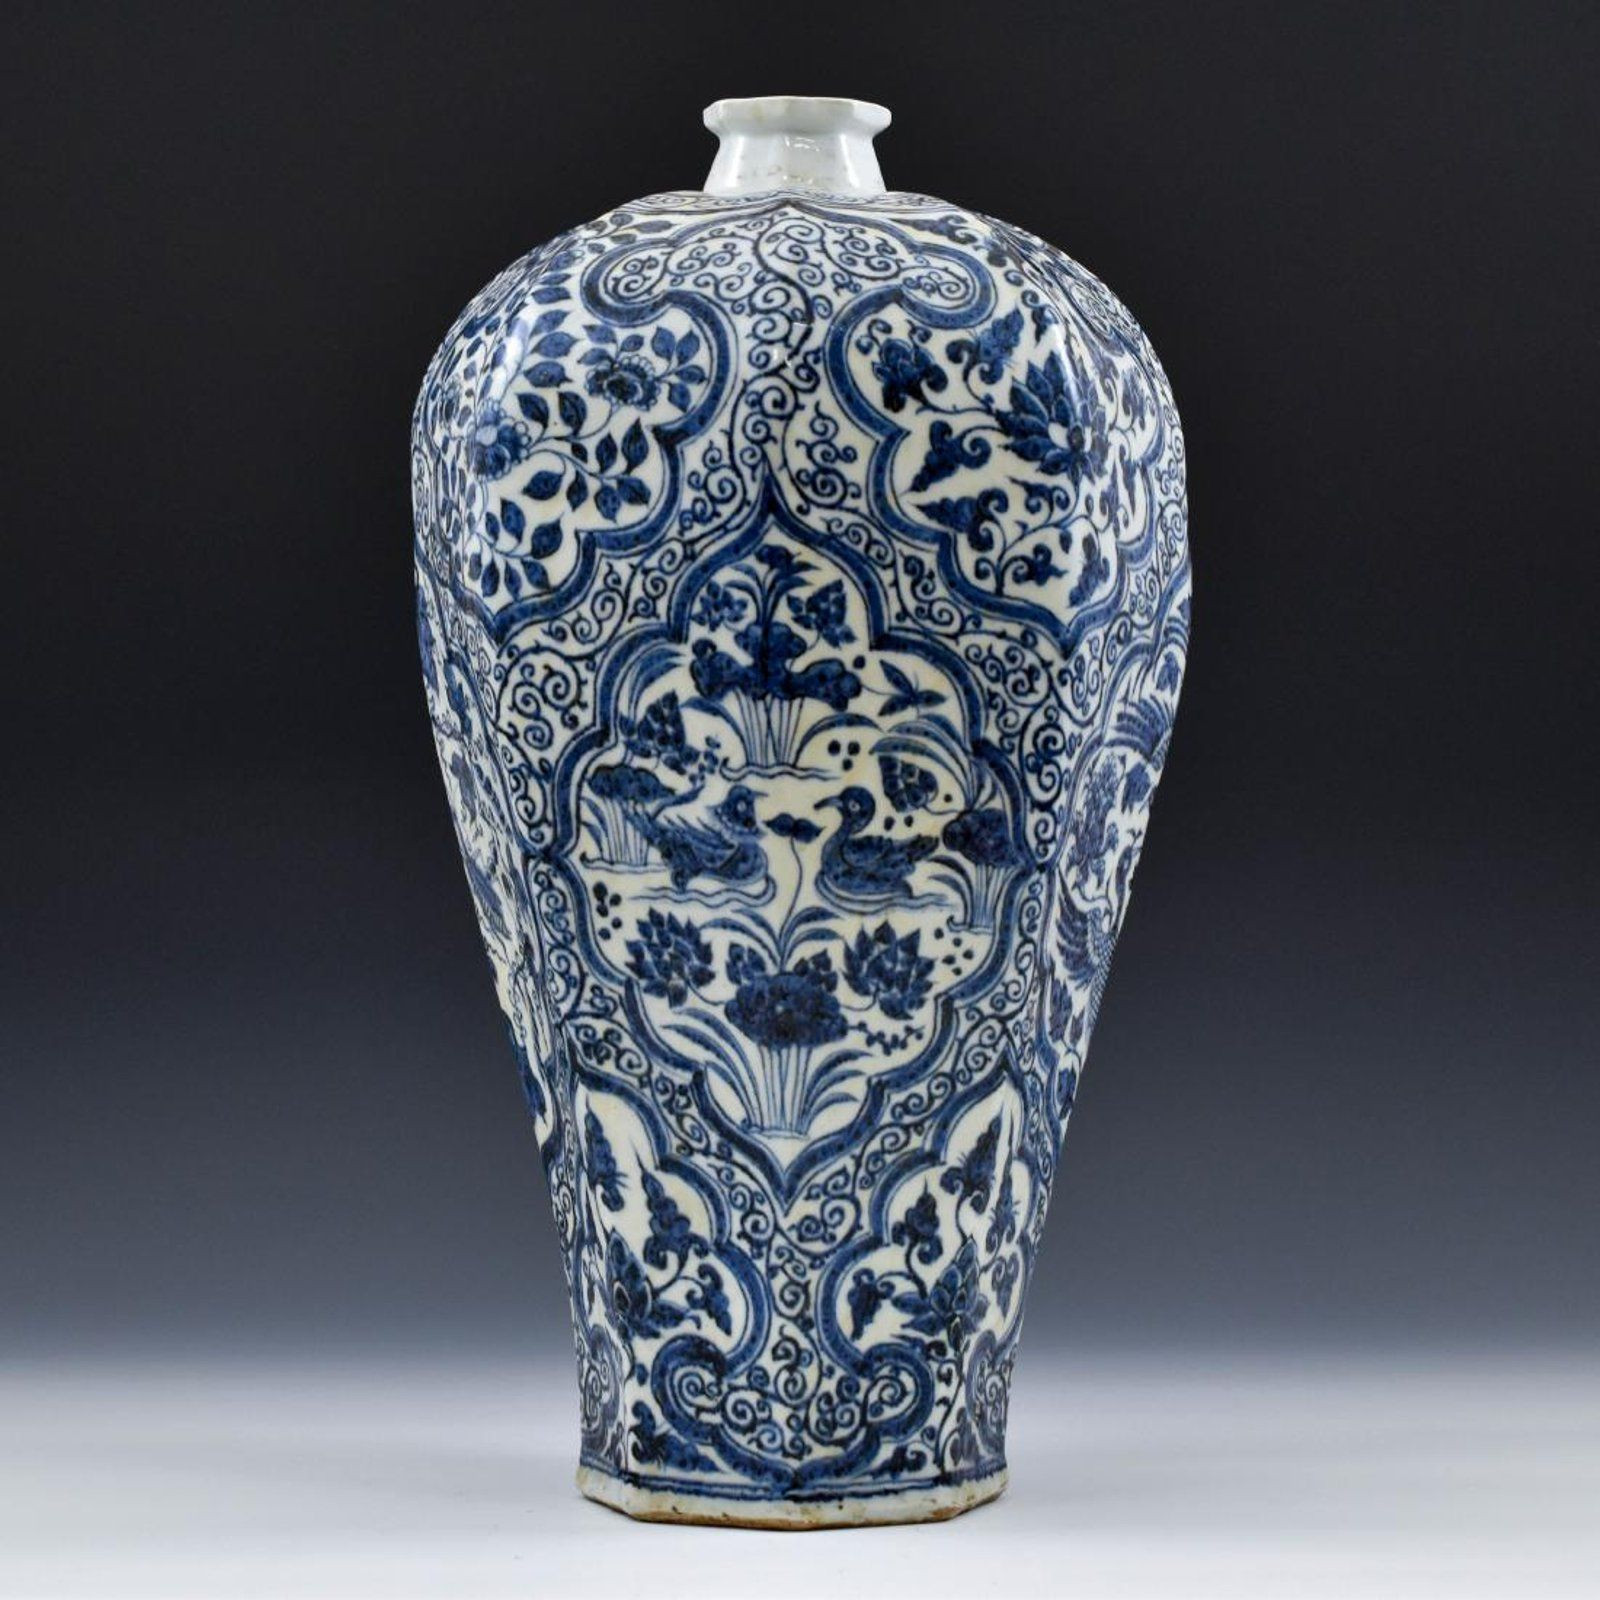 Pink and White Ceramic Vase Of Blue and White Ceramic Vase Pics Ming Dynasty Blue and White for Blue and White Ceramic Vase Pics Ming Dynasty Blue and White Octagonal Meiping Vase